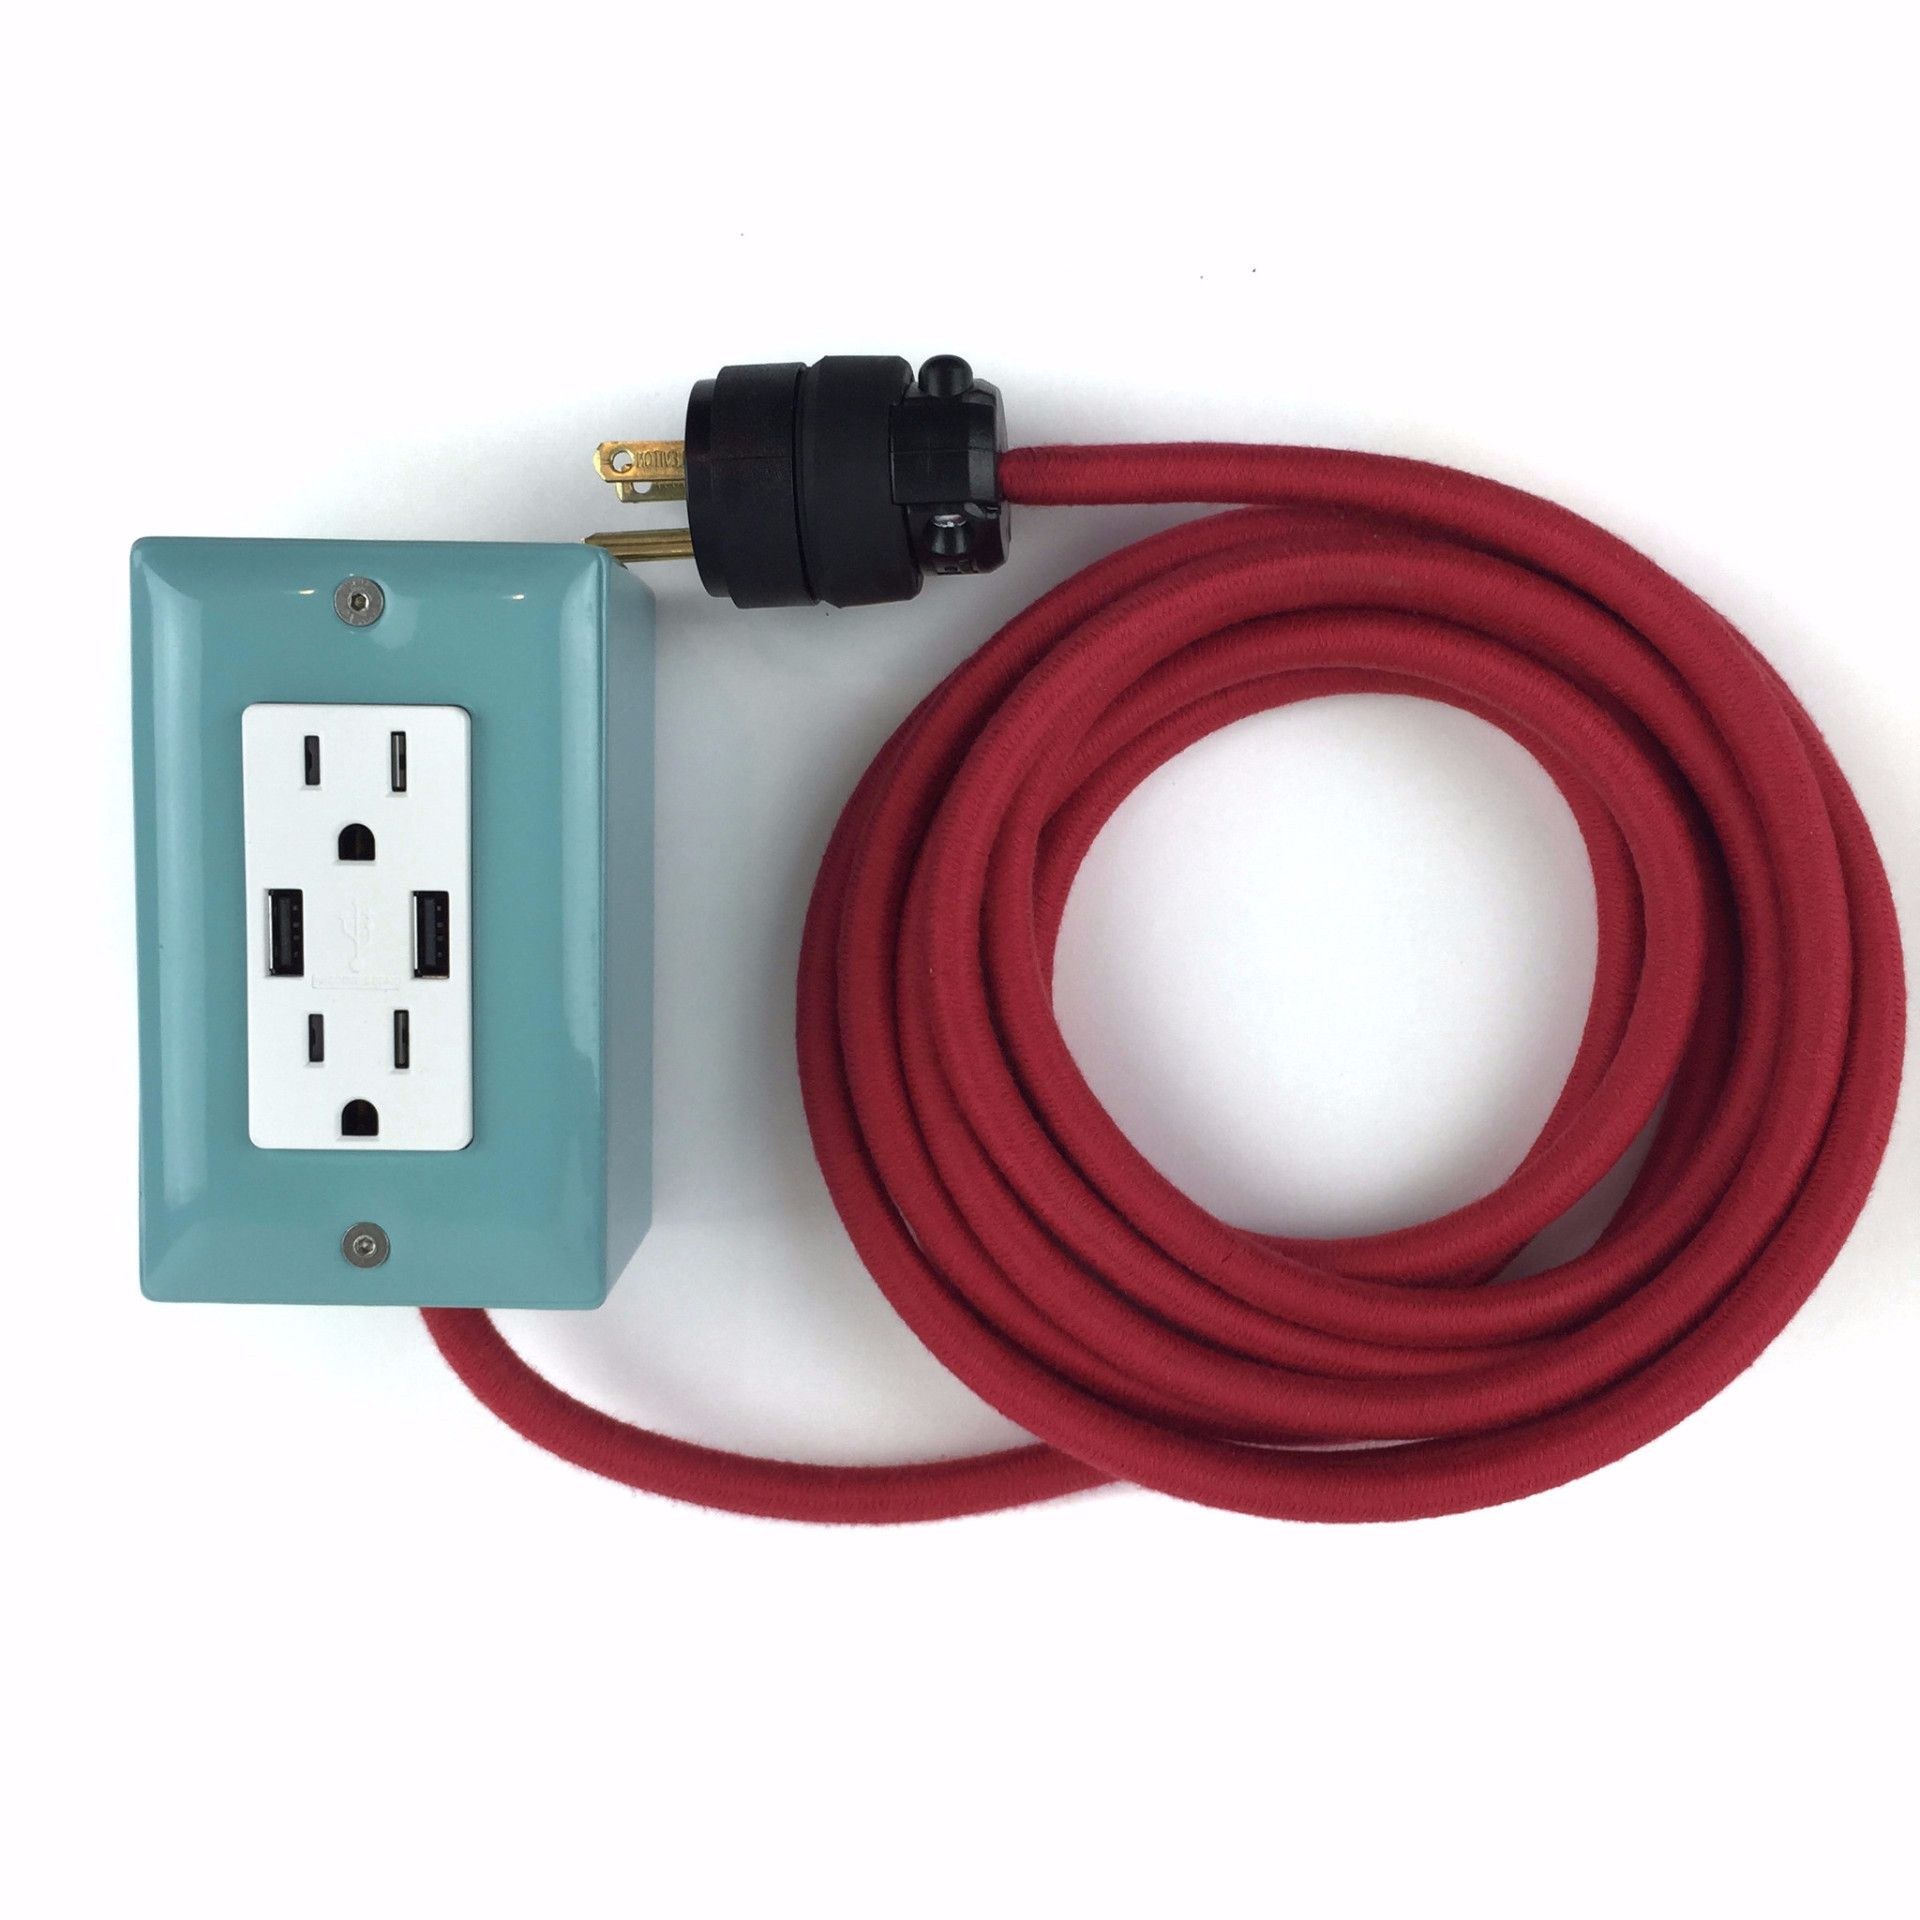 The First Smart Chip Extension Cord 12 Extō Dual Usb Dual Outlet Mint Conway Electric Extension Cord Mint Top